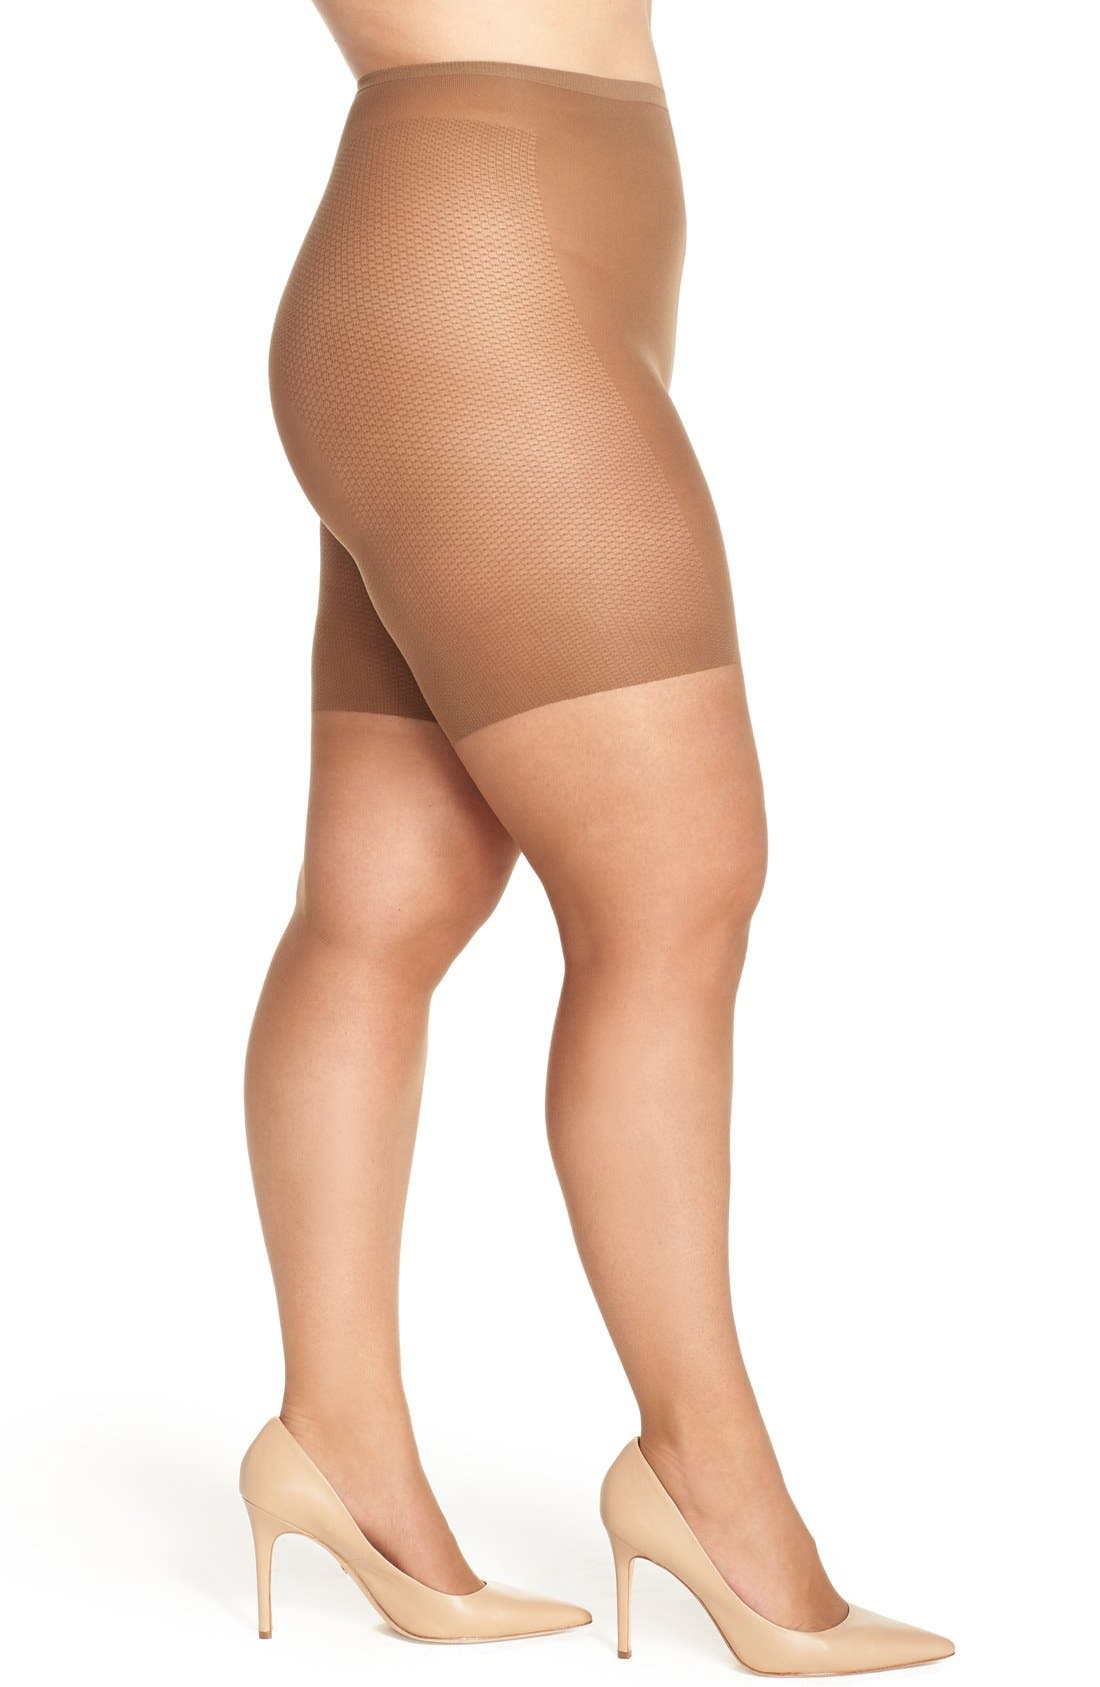 Alternate Image 1 Selected - Berkshire Light Control Top Pantyhose (Plus Size)